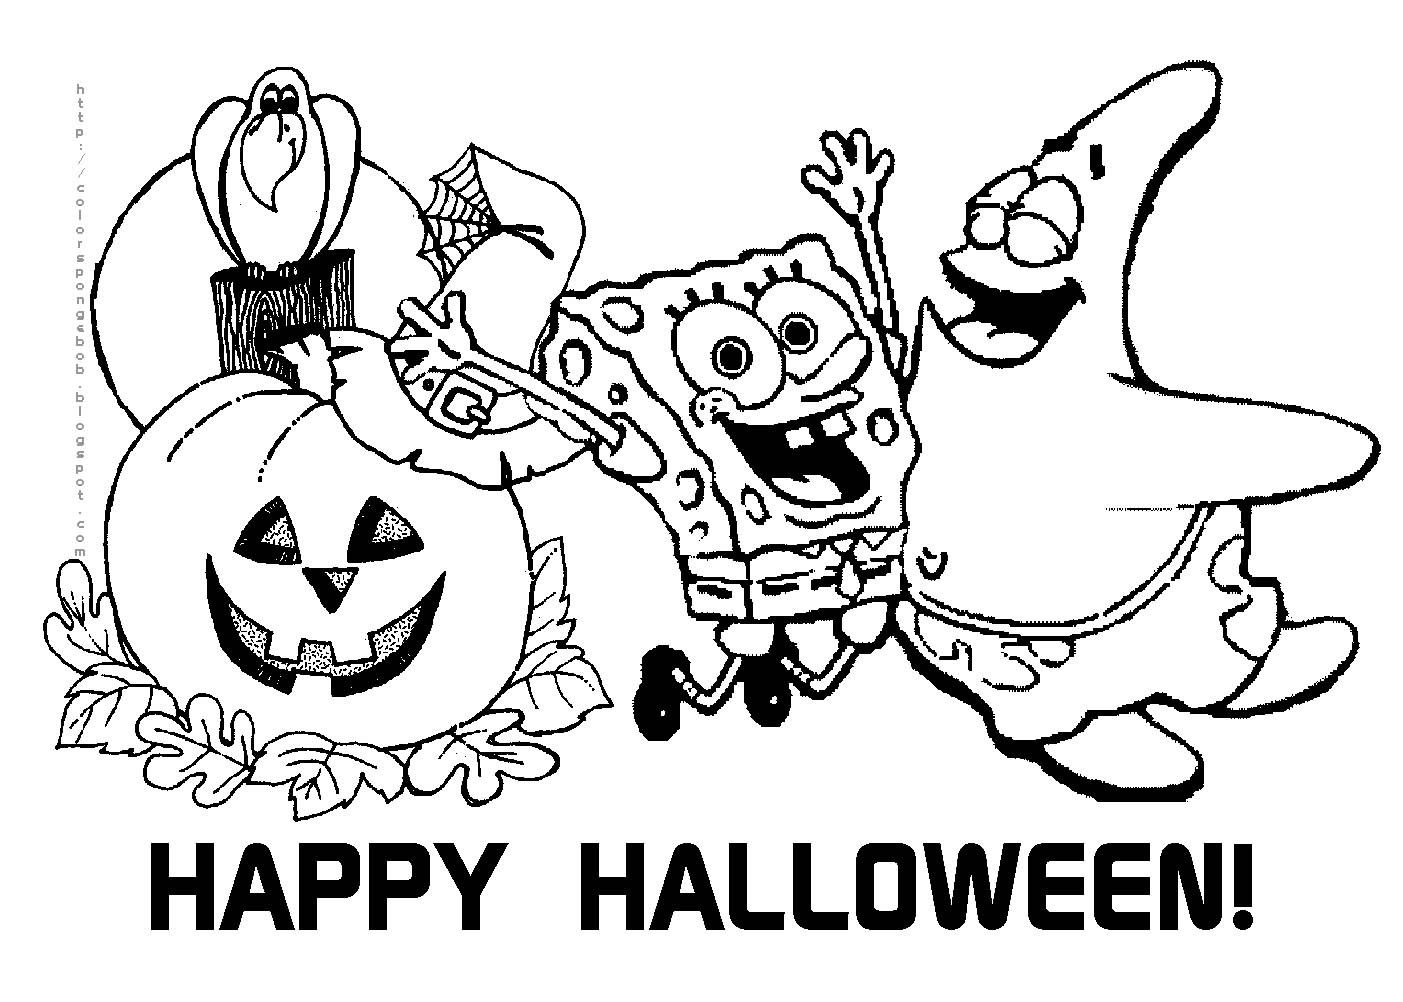 Coloring Pages Free Coloring Pages For Halloween To Print 1000 images about halloween on pinterest free printable coloring pages happy and for kids